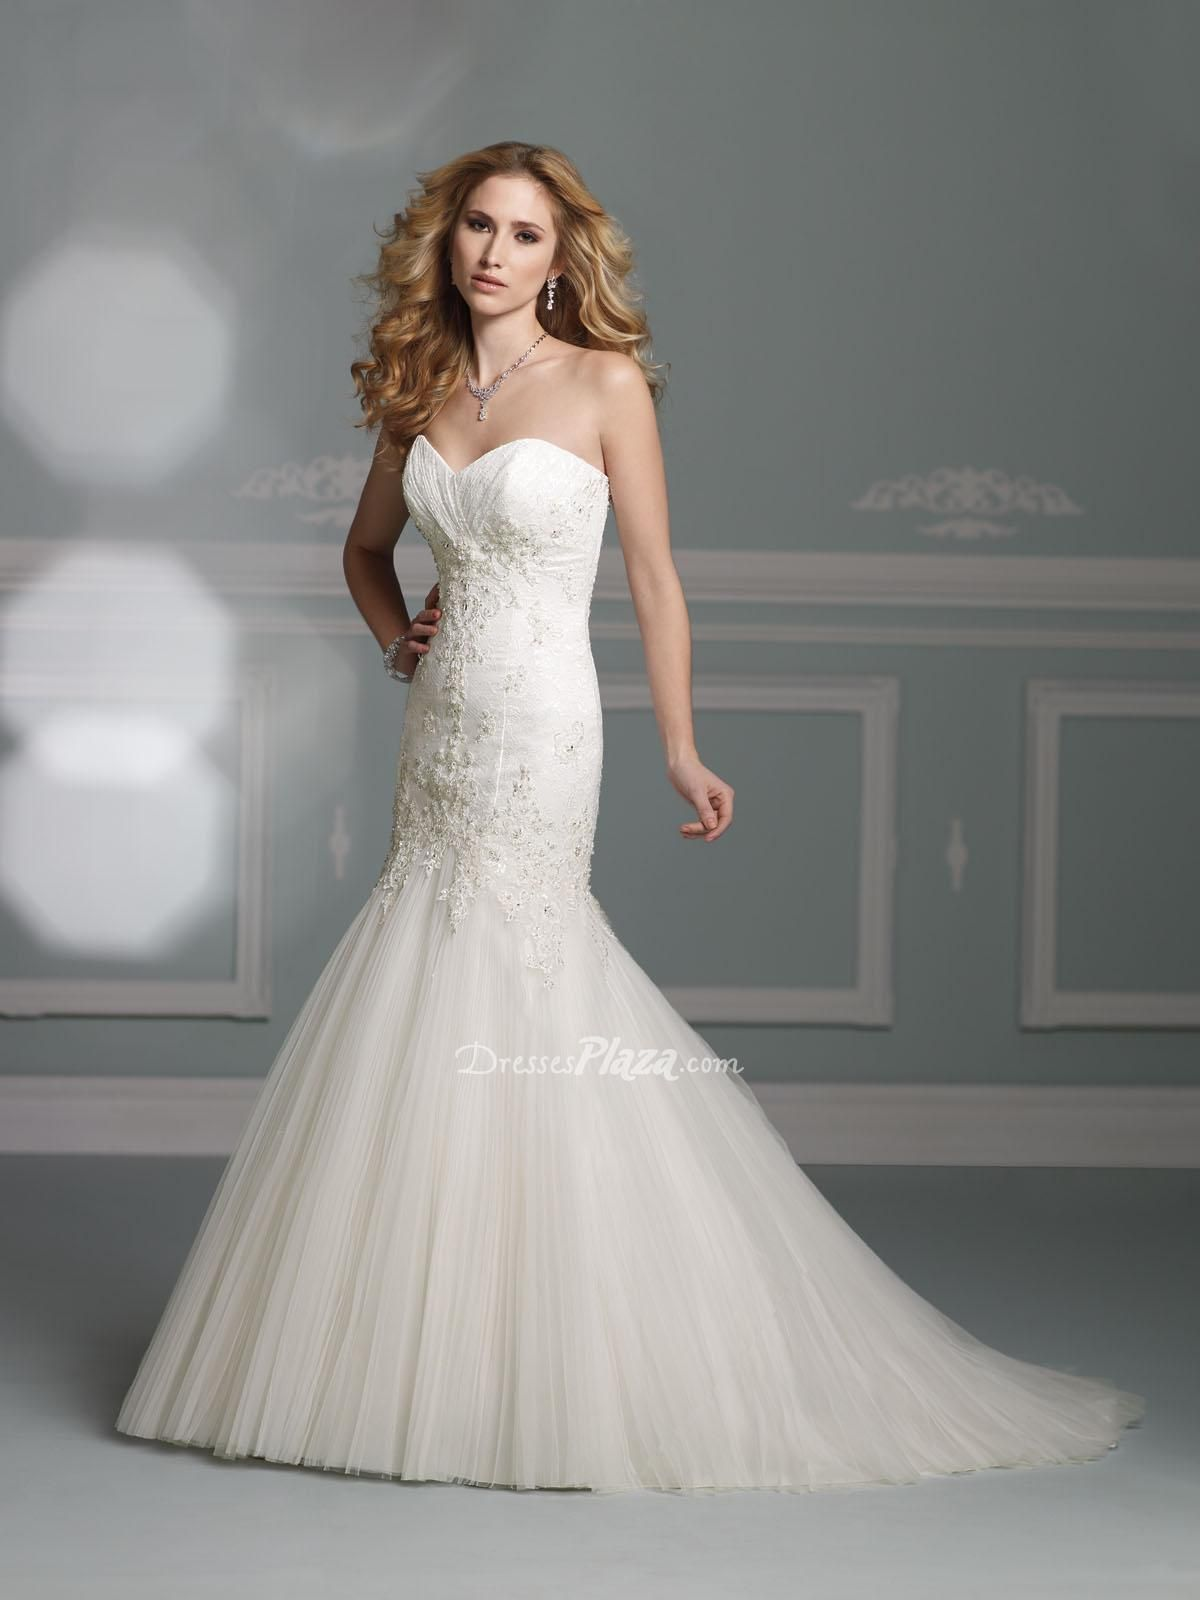 1000  images about Mermaid Wedding Dresses on Pinterest  Prom ...